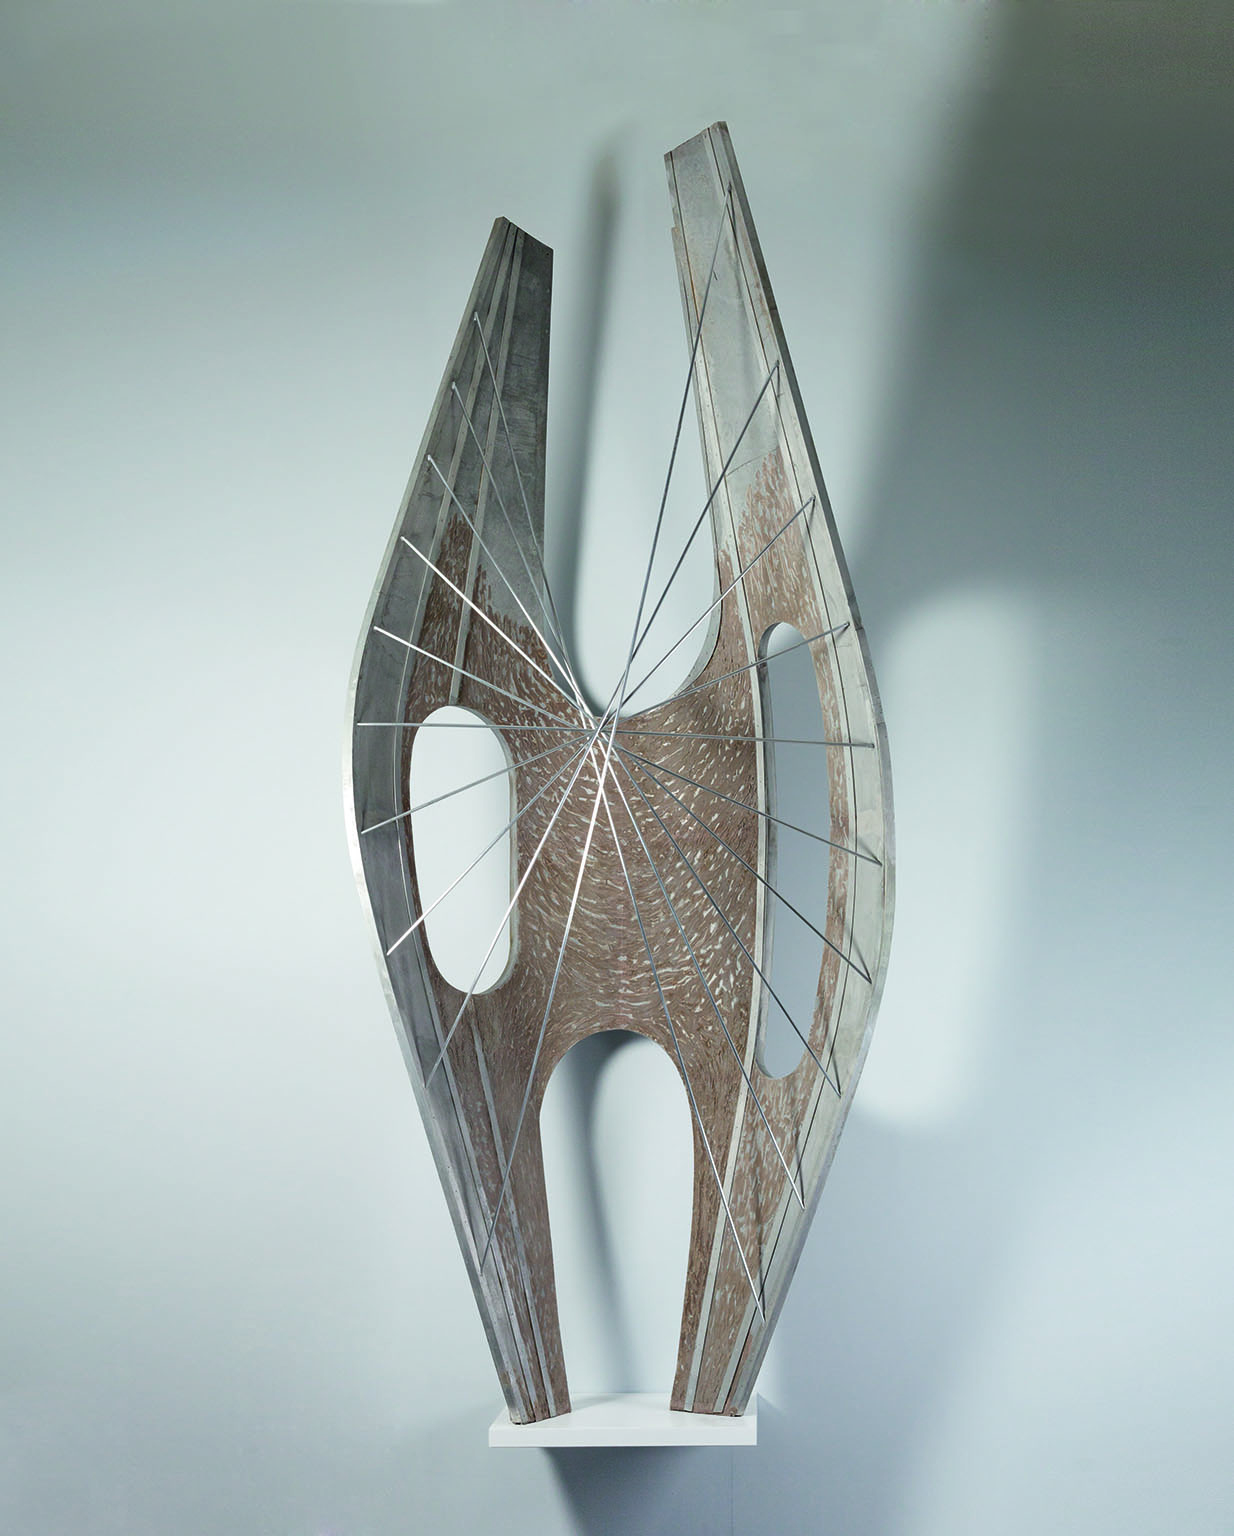 Full scale model of Winged Figure, 1961-2, The Hepworth, Wakefield - © Bowness, Hepworth Estate